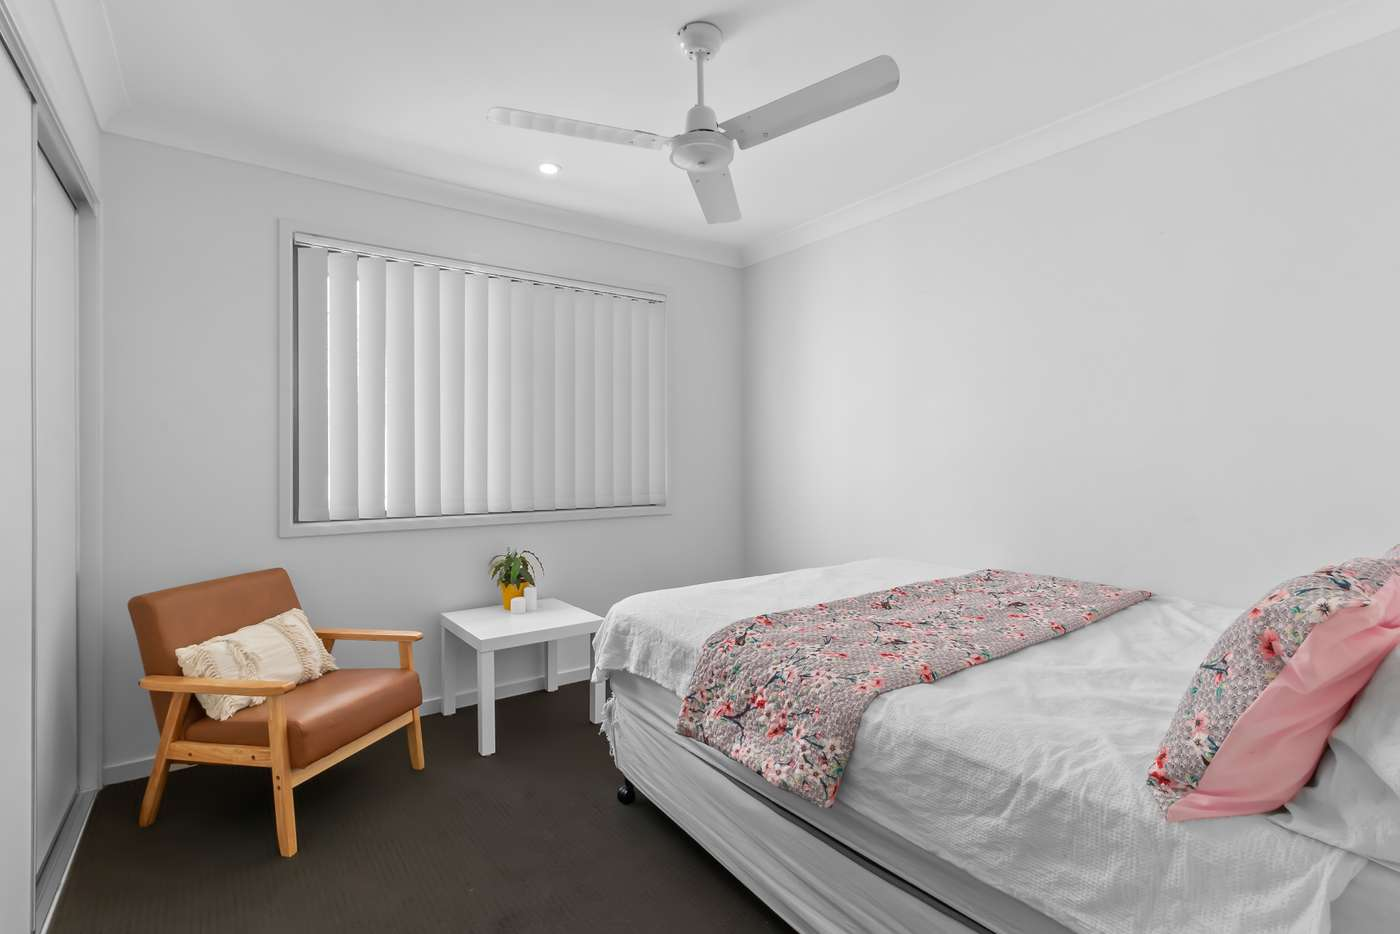 Sixth view of Homely house listing, 4 Bayleaf Street, Griffin QLD 4503